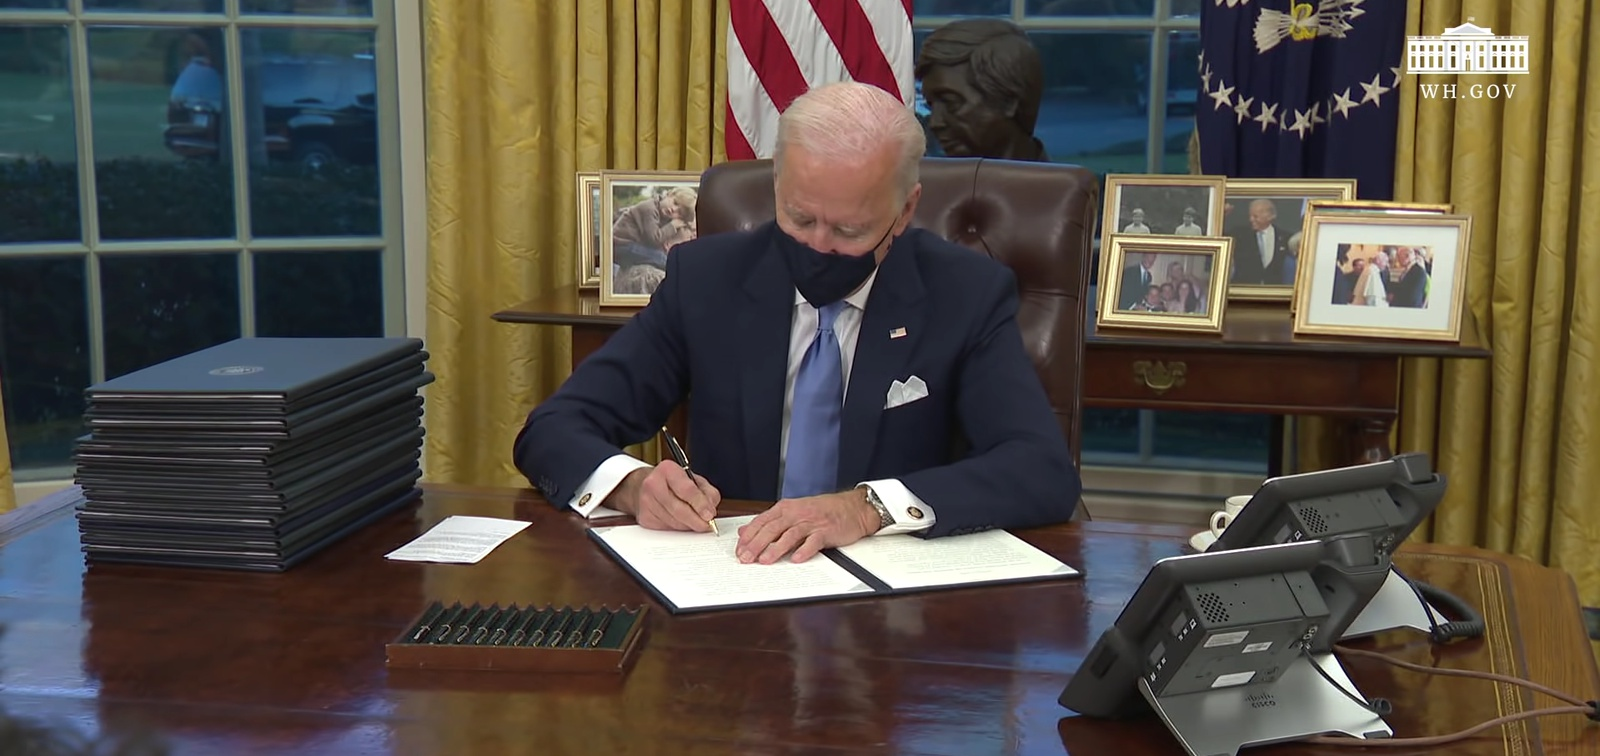 Biden to create special enrollment period for ACA exchanges